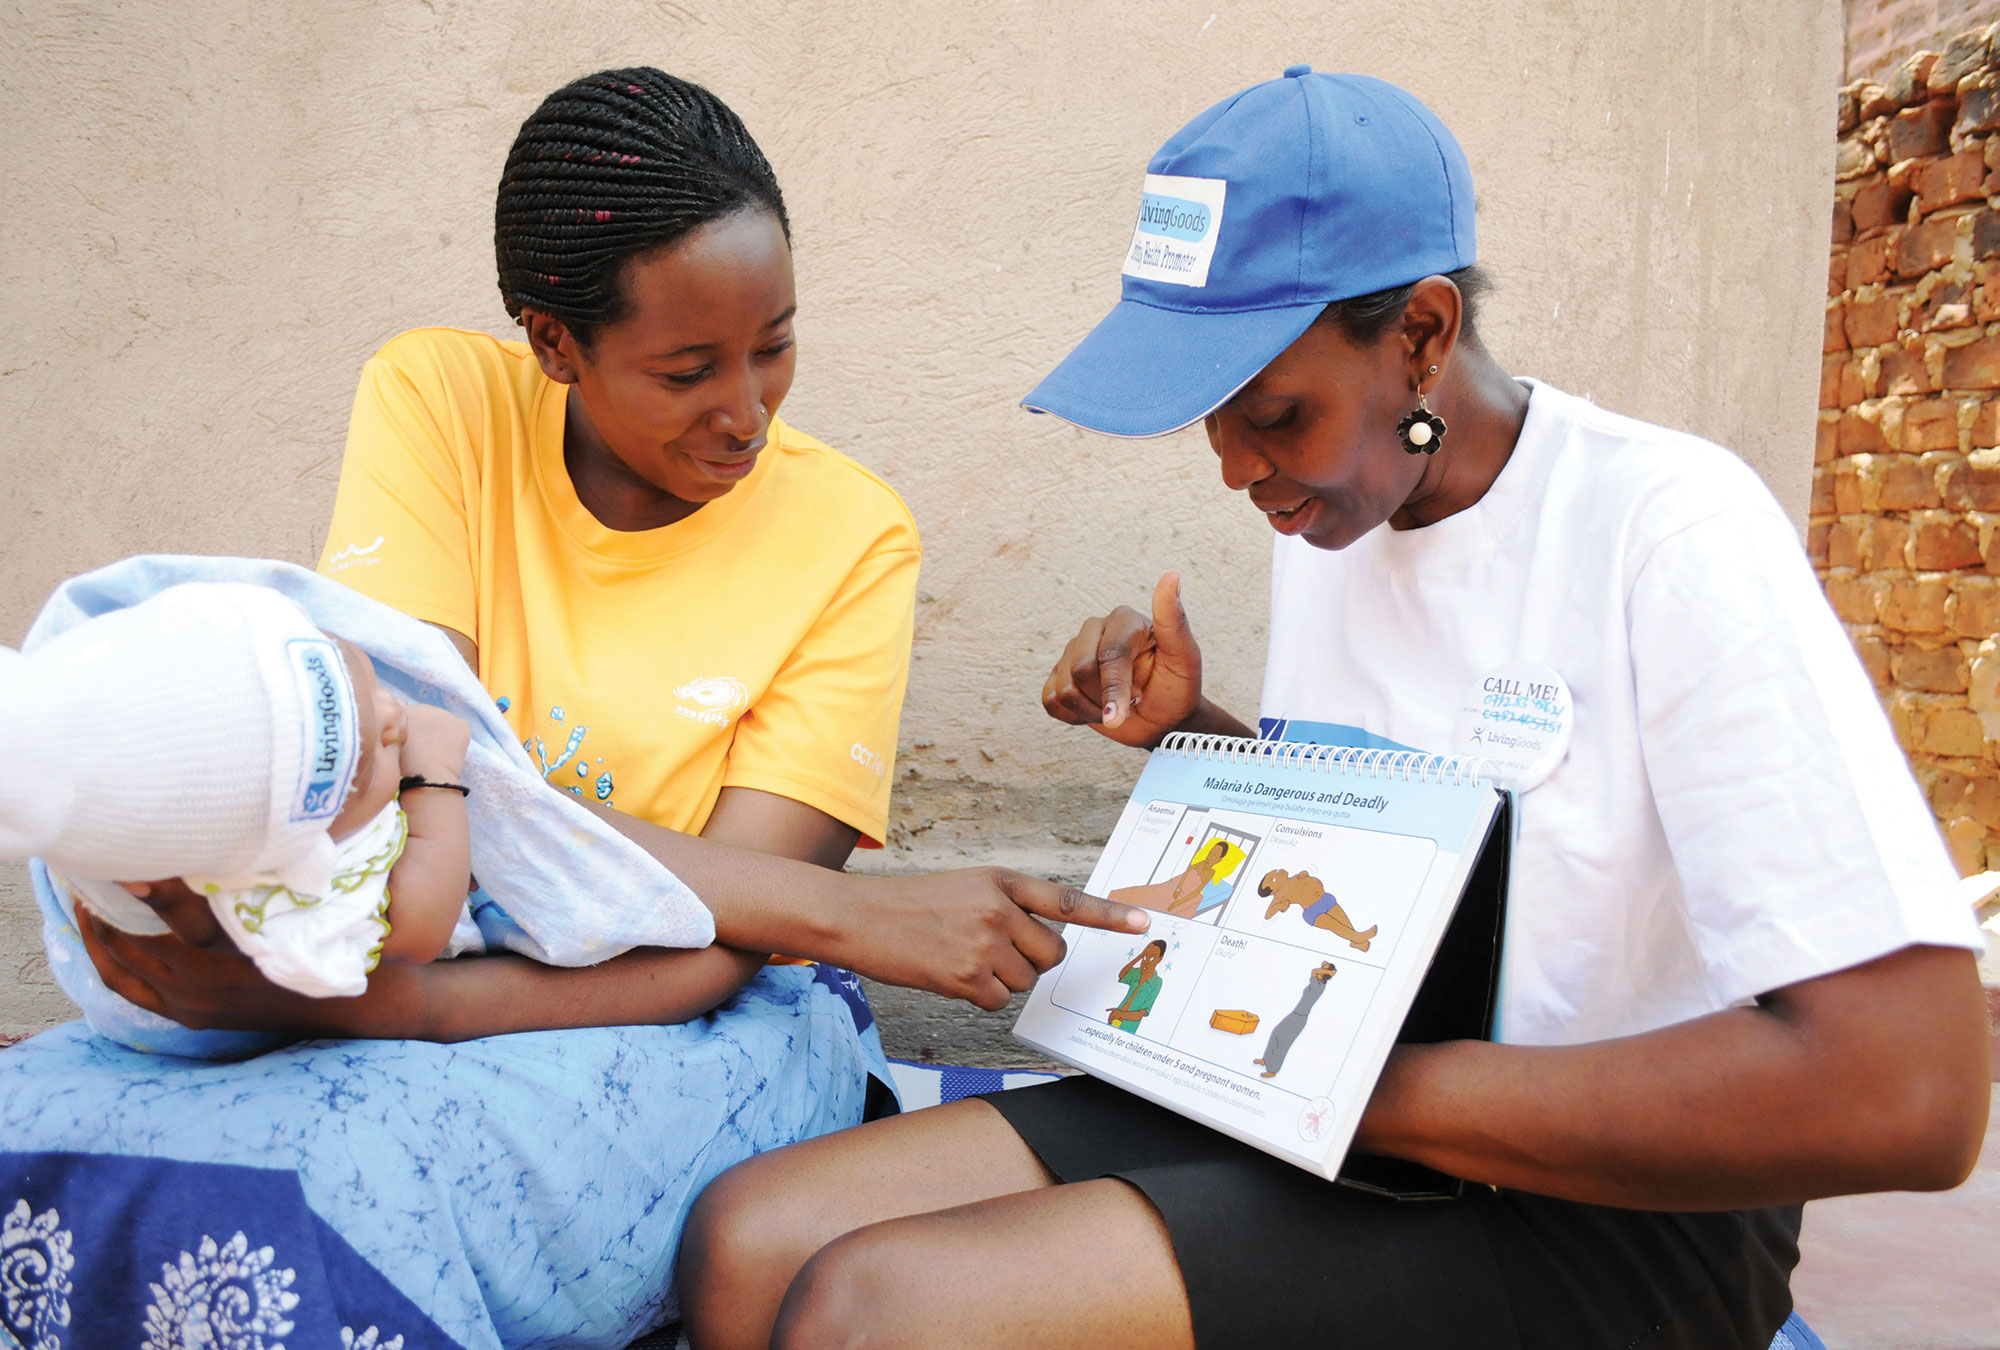 A healthcare worker and mother with a baby in sub-Saharan Africa.